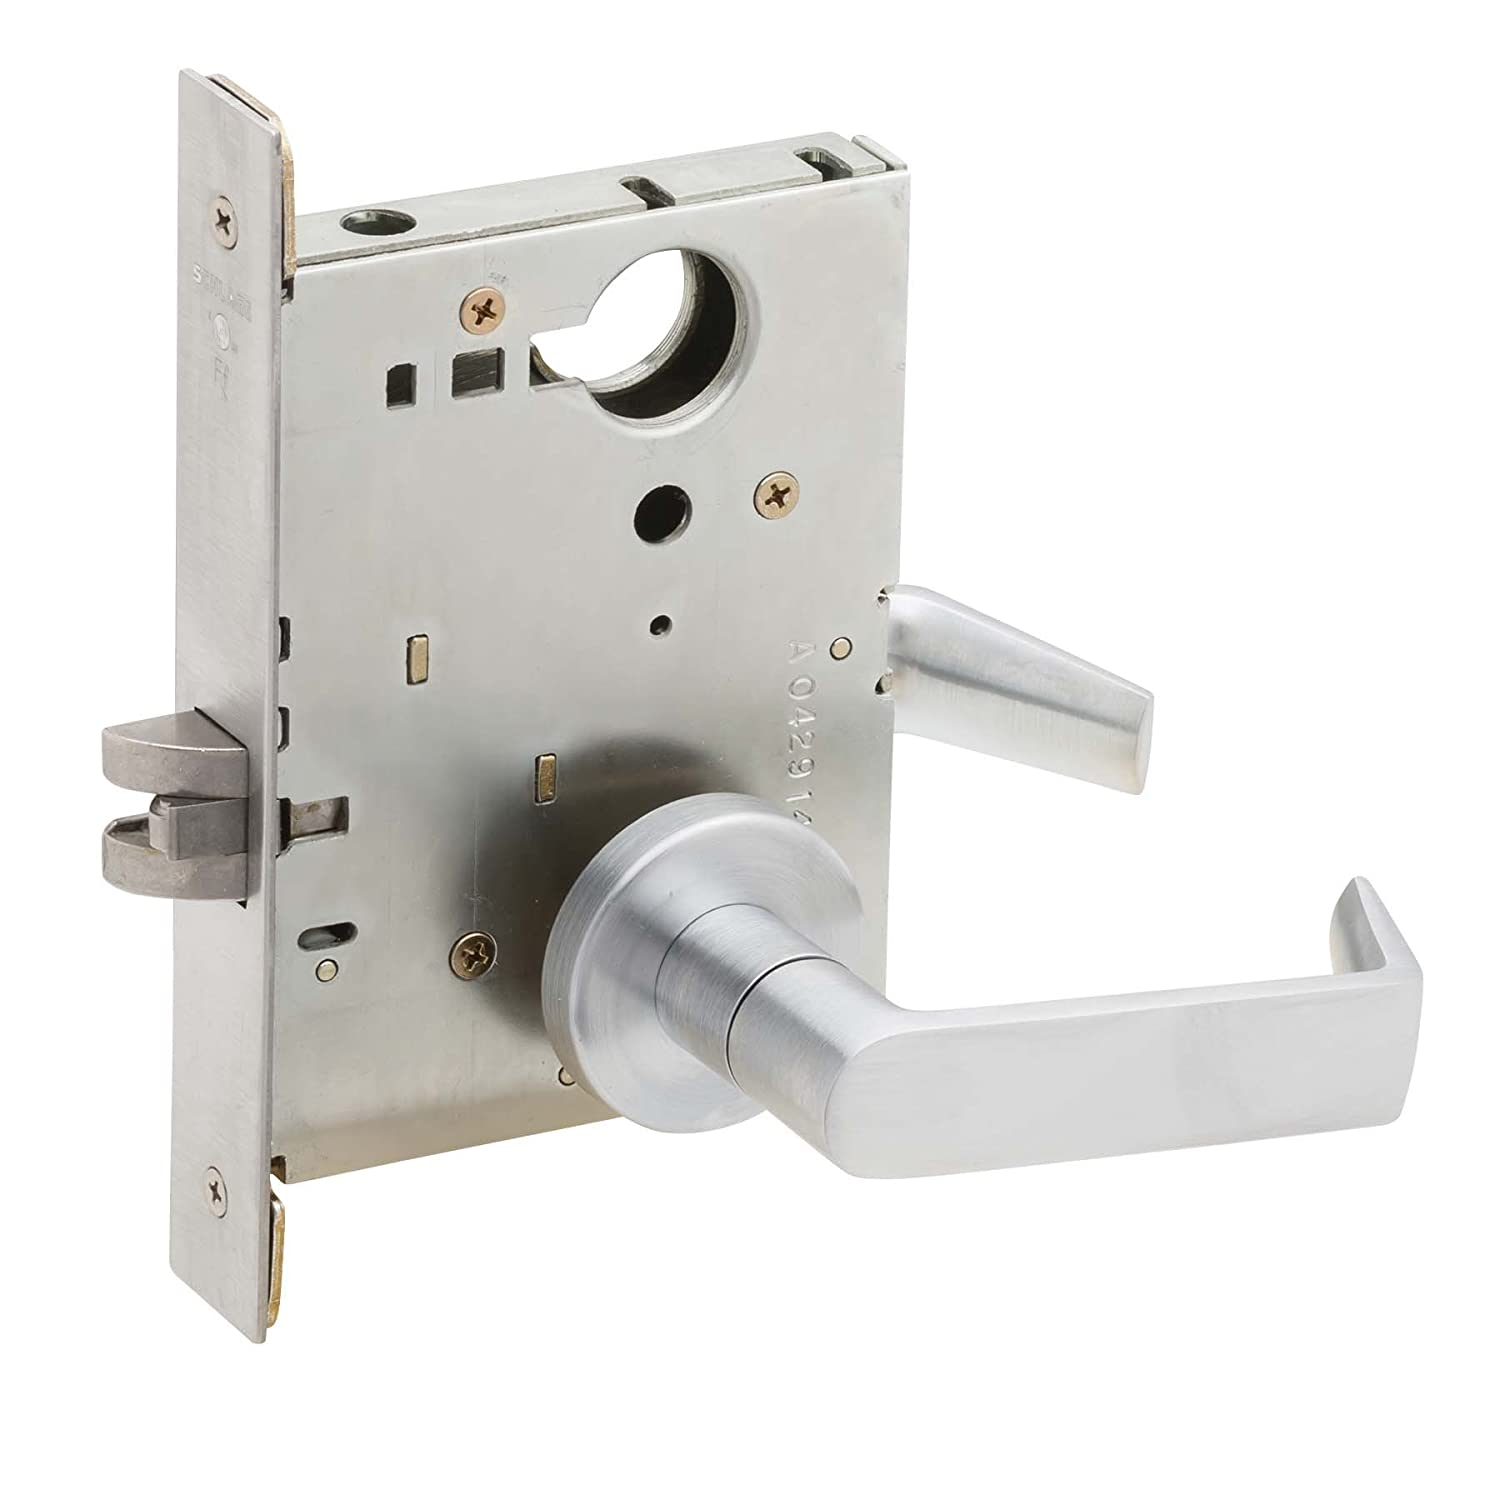 Schlage L9010 06A 626 Series L Grade 1 Mortise Lock, Passage Function, Keyless, 06A Design, Satin Chrome Finish